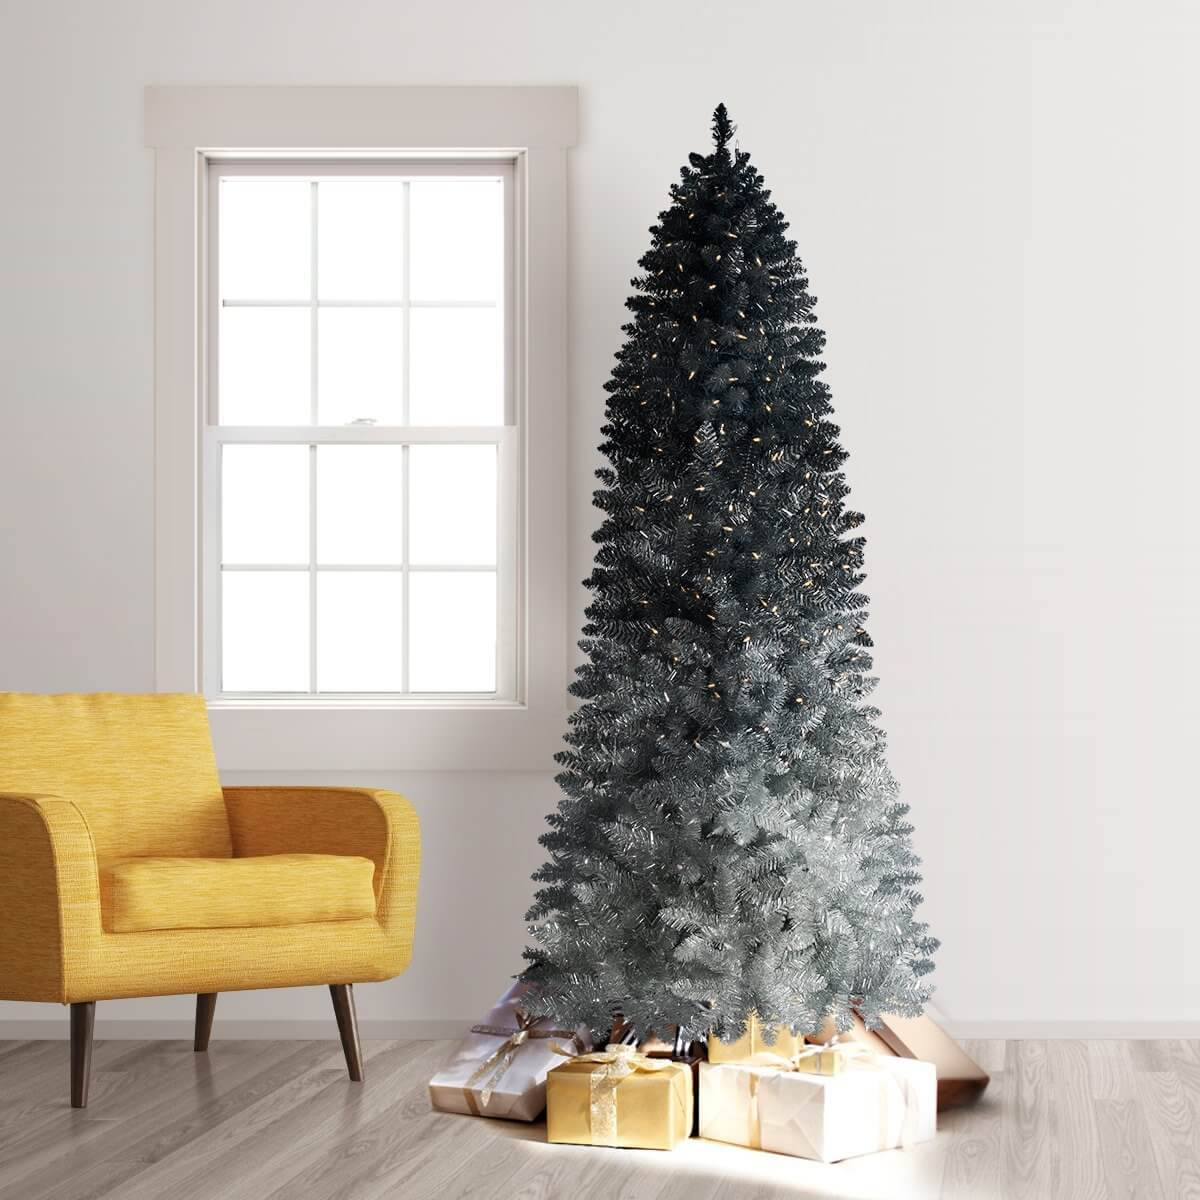 4 ombr christmas trees to light up your holidayslooking to brighten up your home - Christmas Tree Black